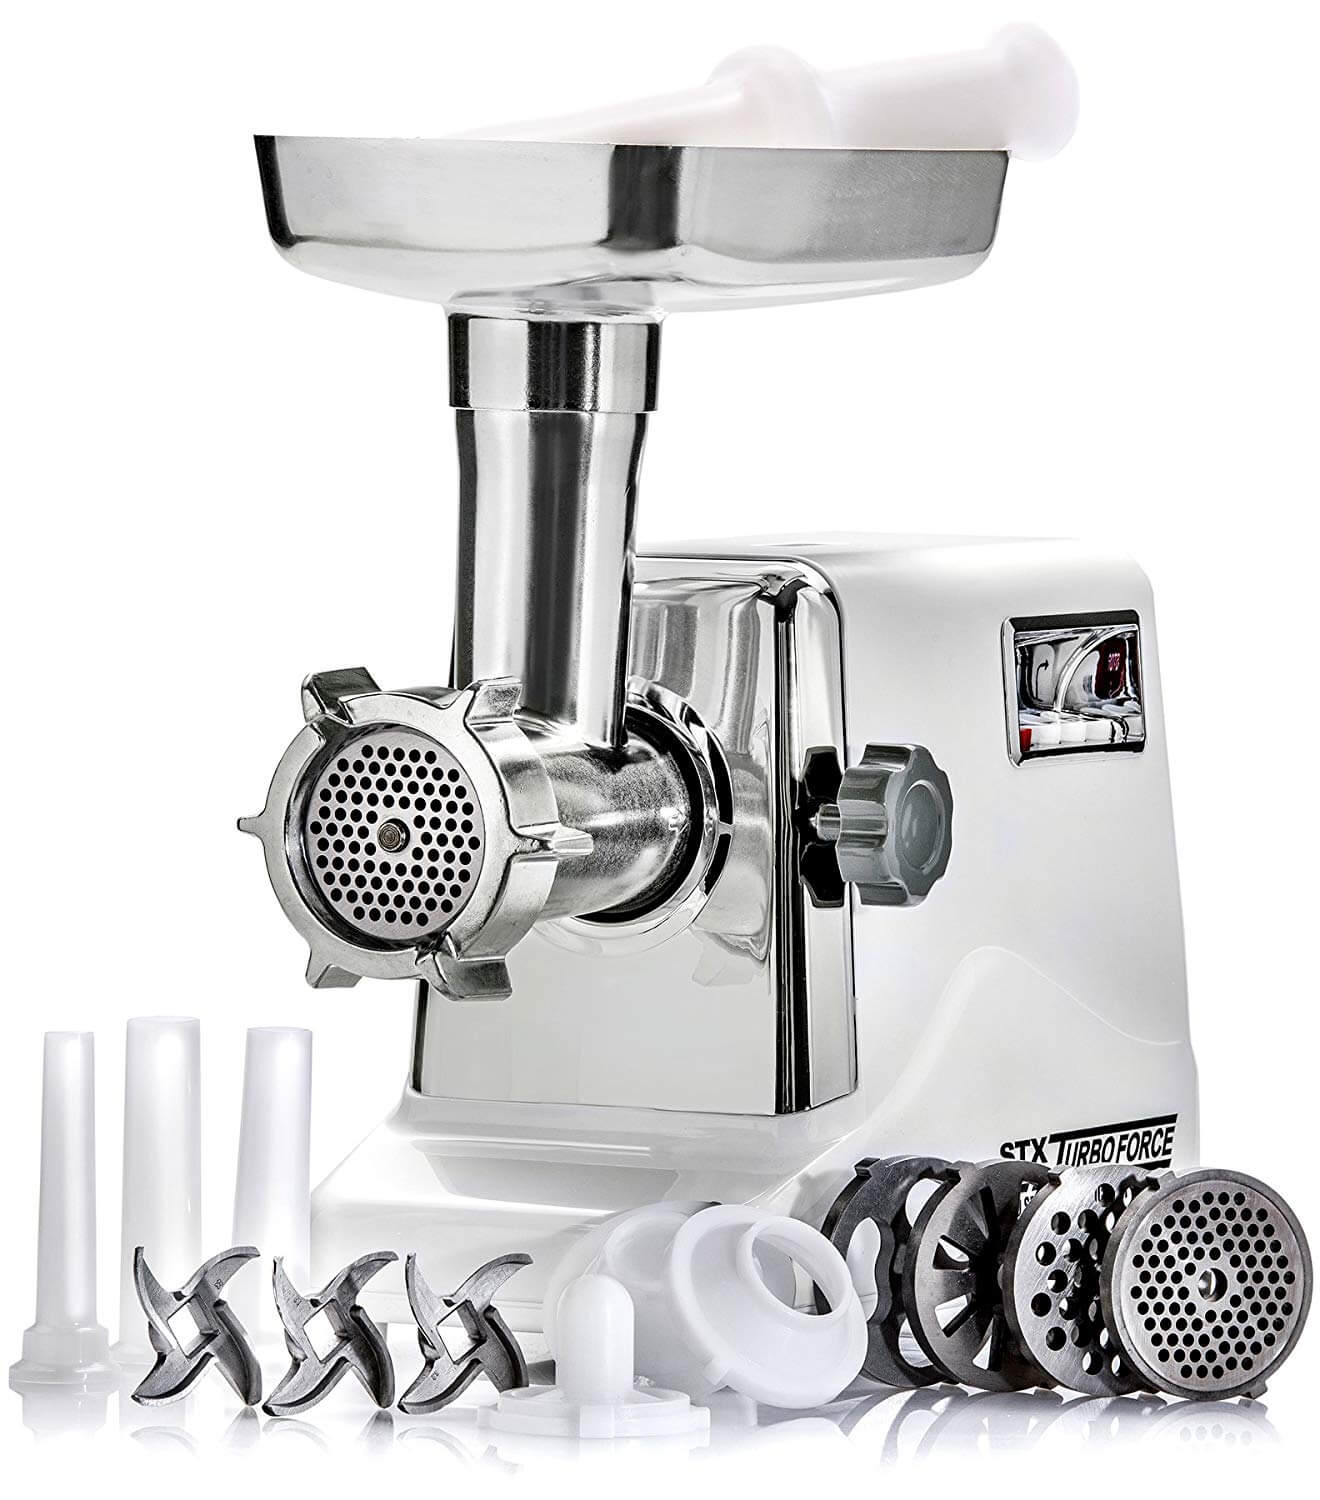 STX International STX-3000-TF Turboforce 3 Speed Electric Meat Grinder & Sausage Stuffer